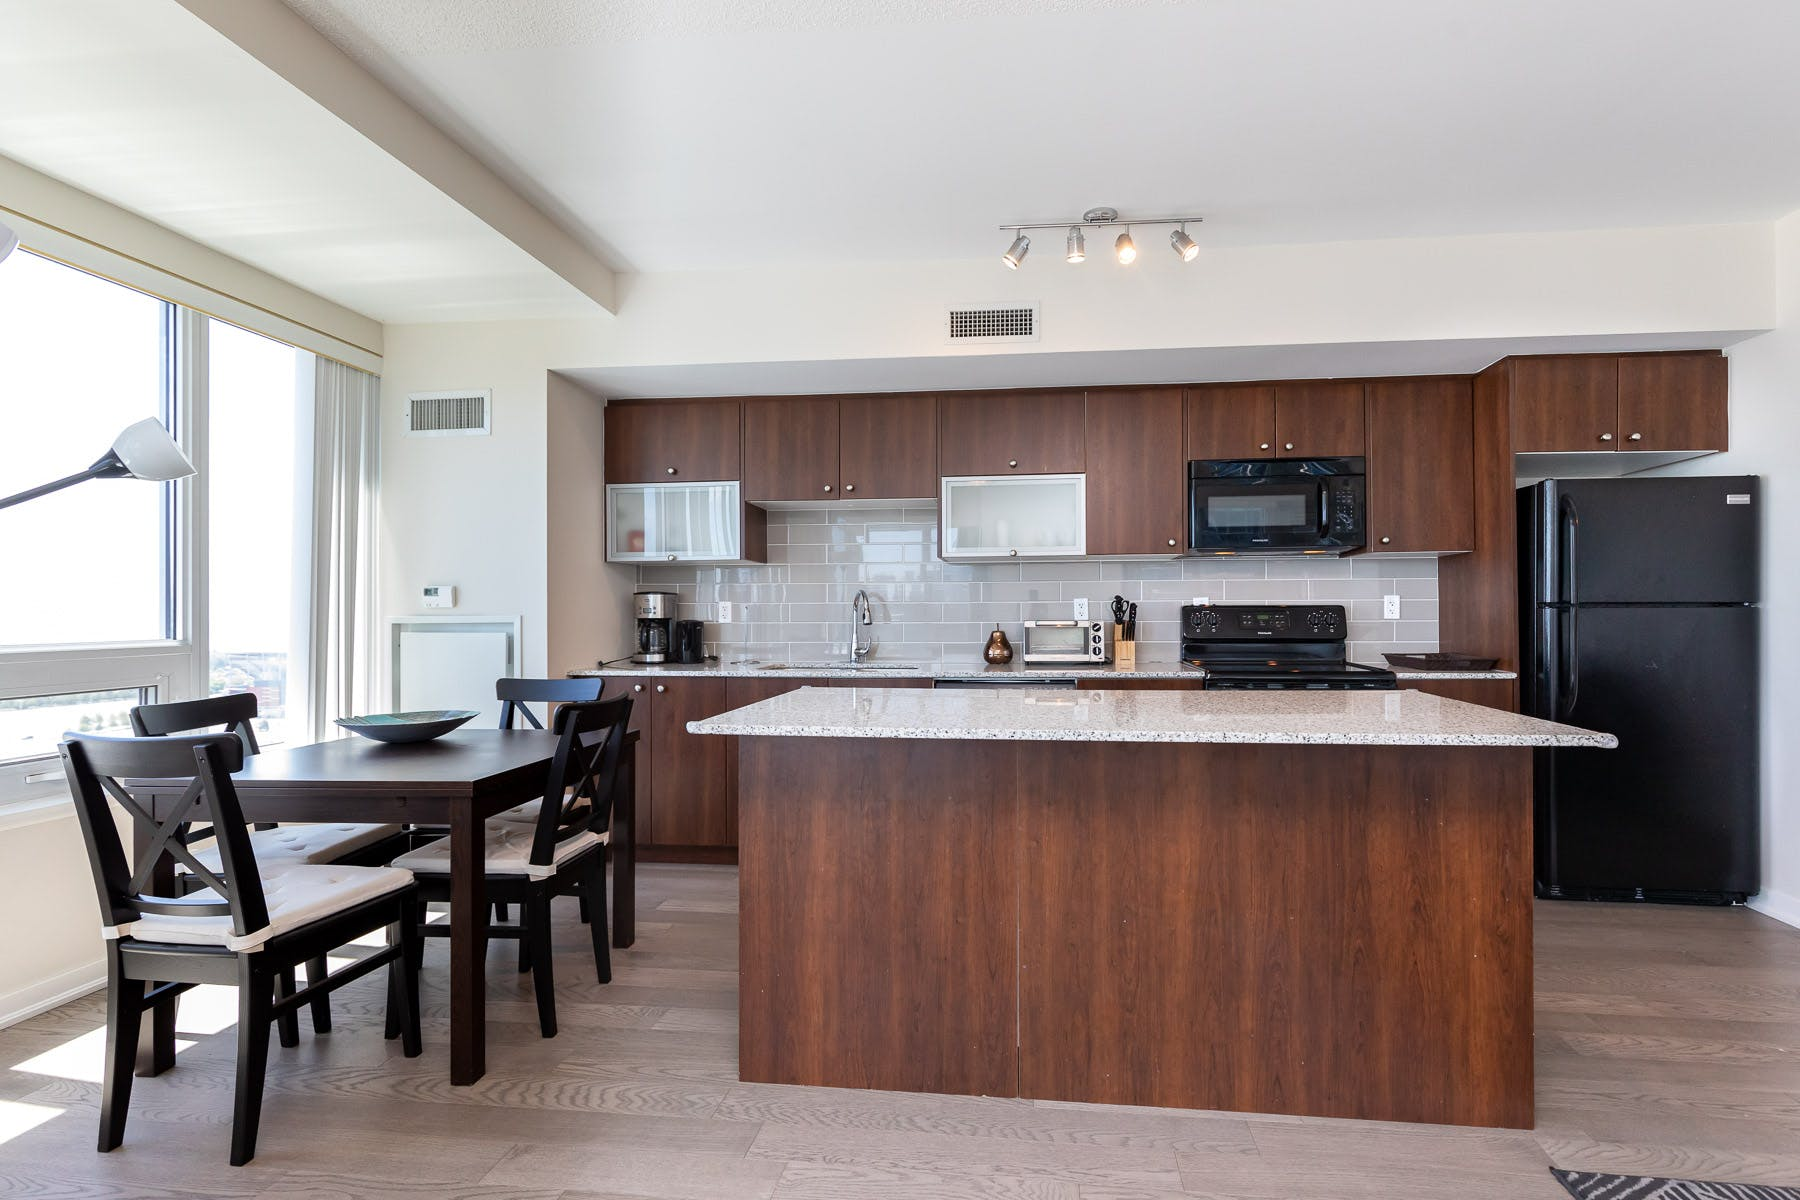 Upscale Apt. Overlooking the City  - Incl. Pool + Gym